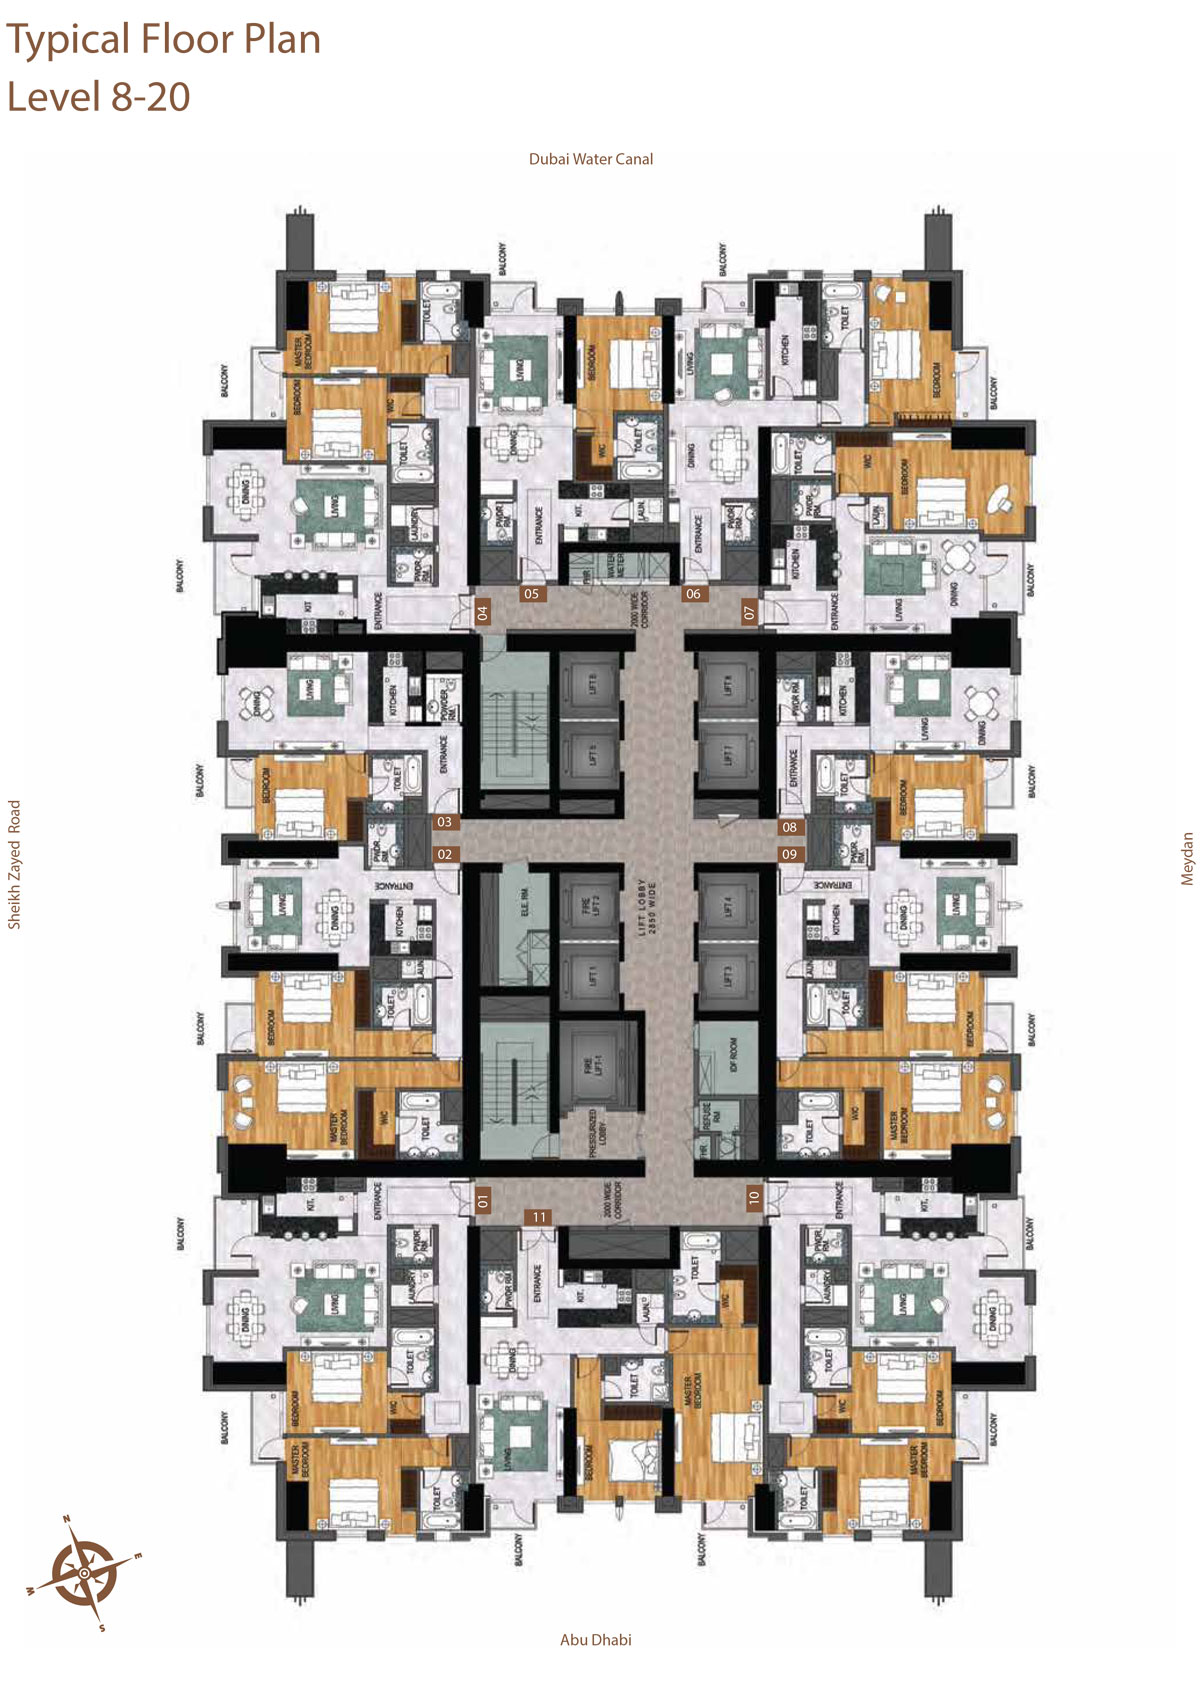 Level 8-20    Typical Floor Layout Plan